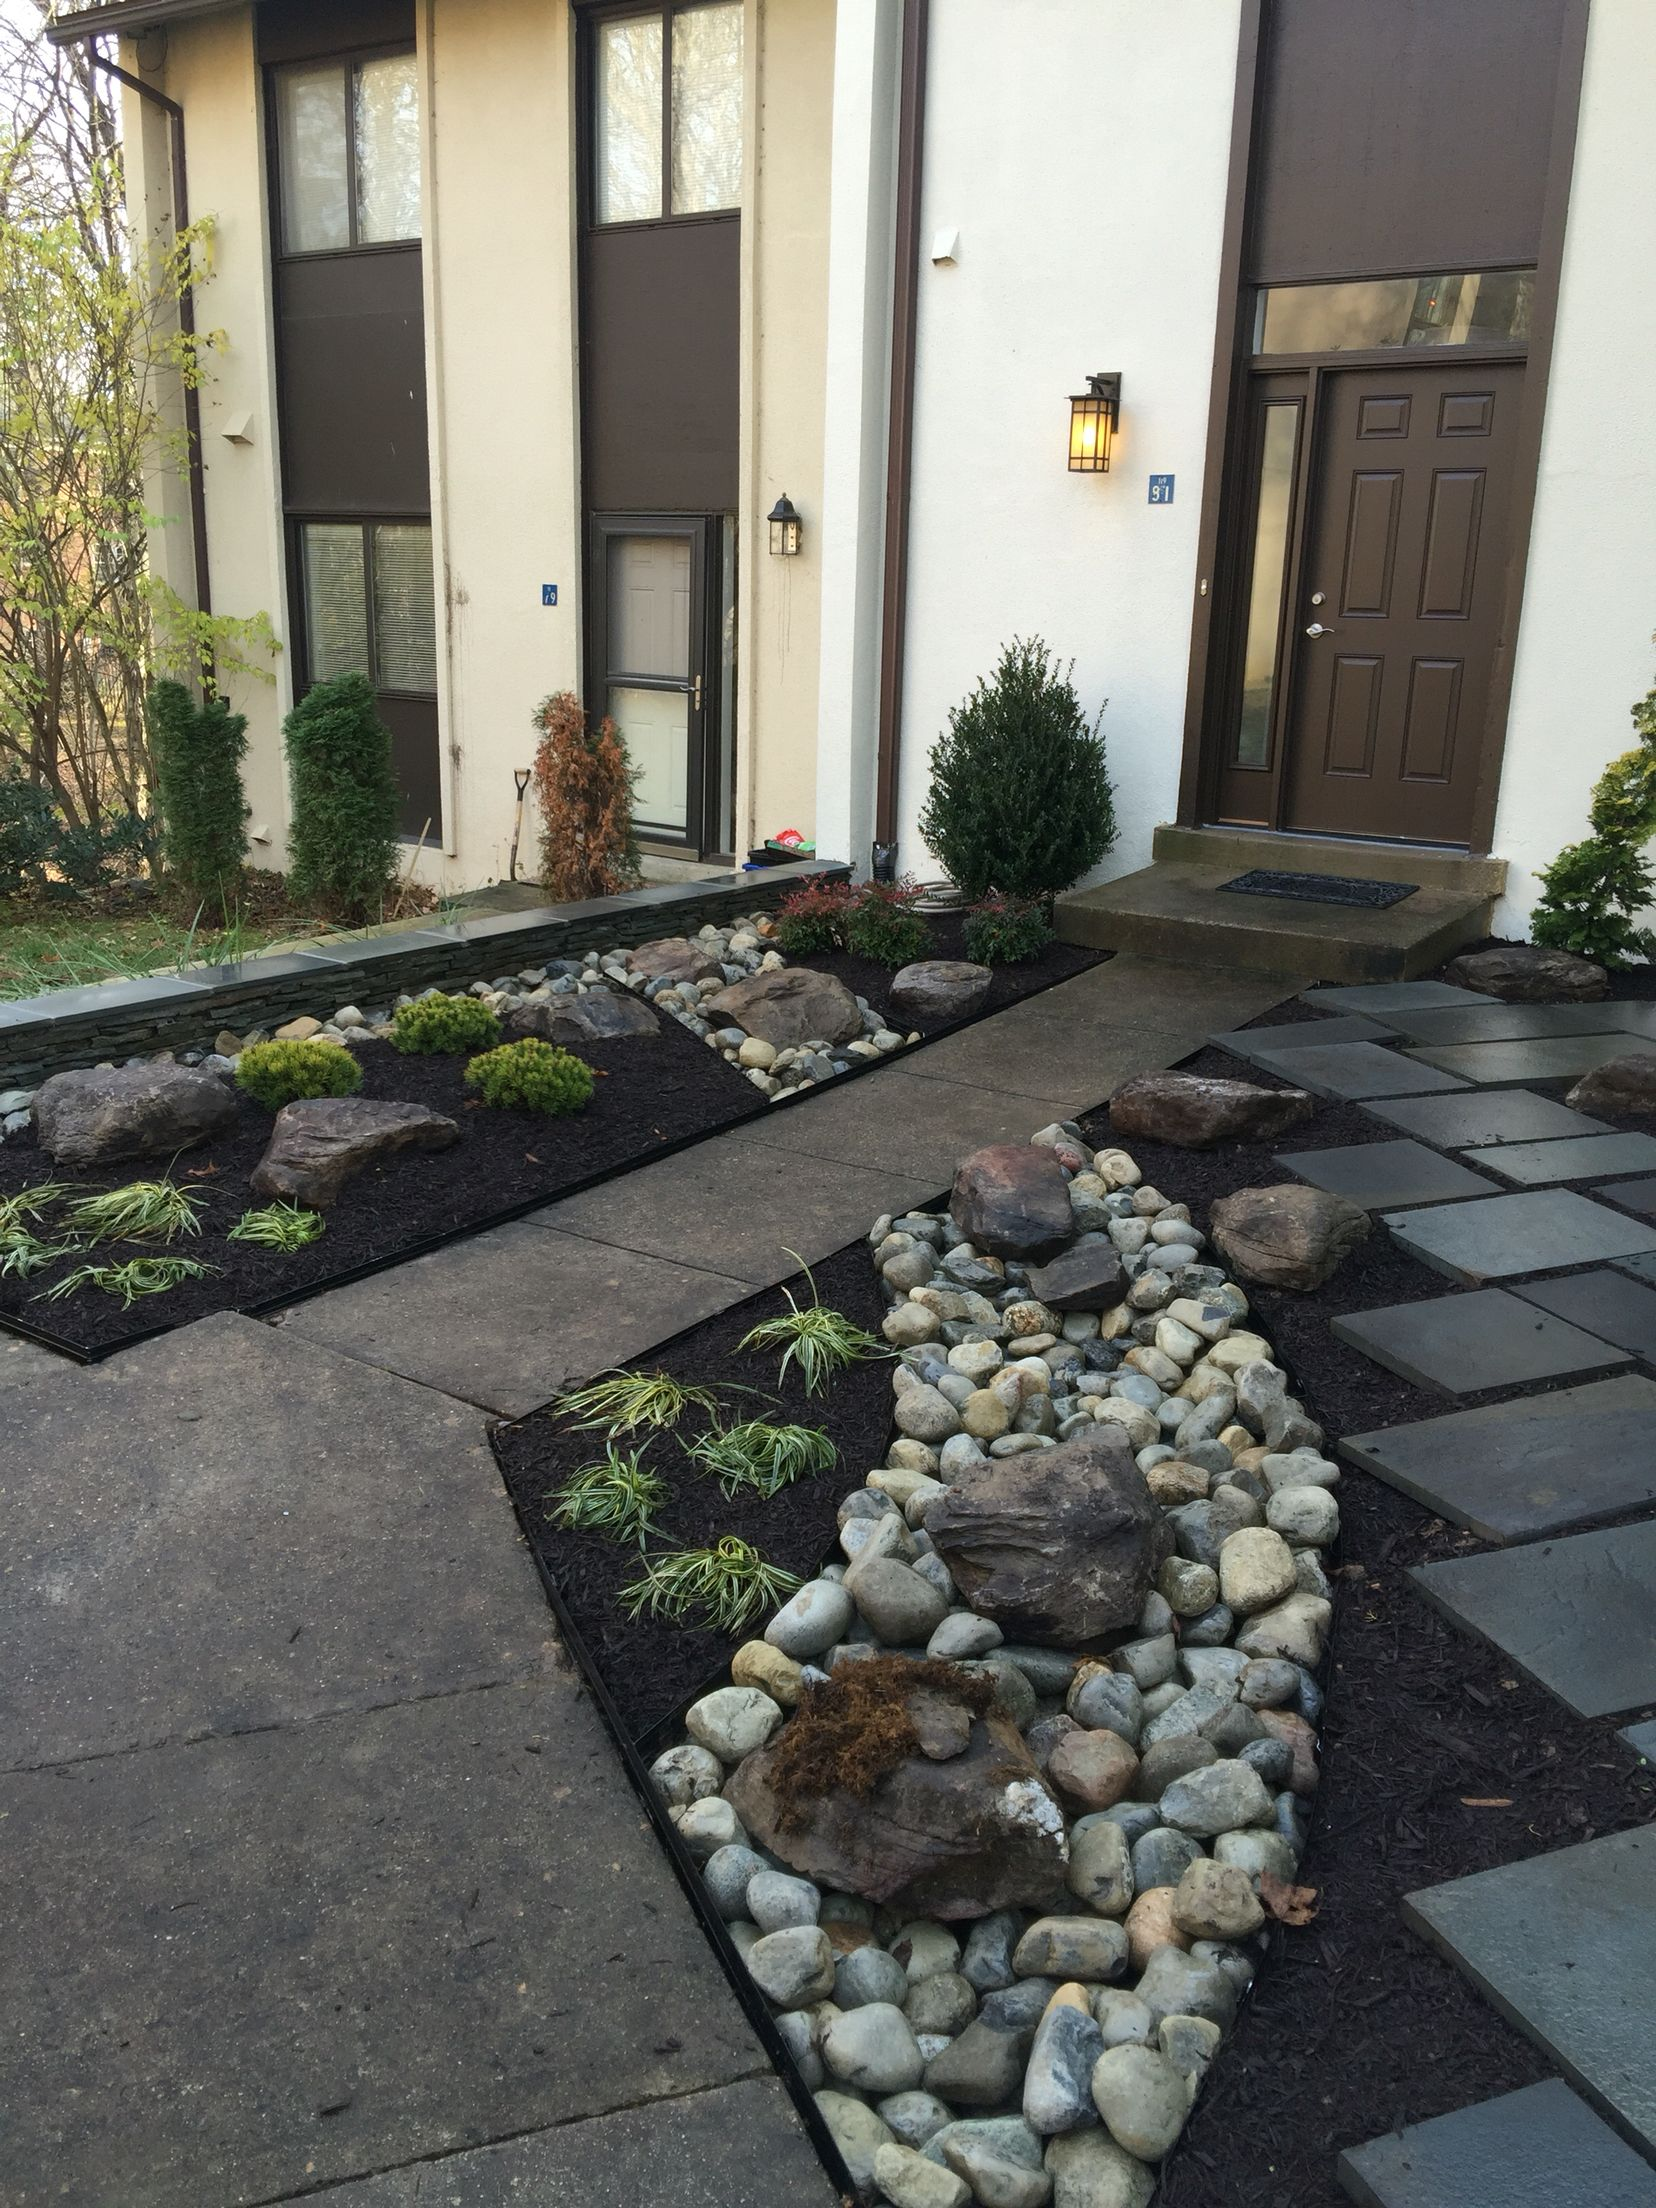 Townhouse landscaping with dry river and slate design for Townhouse landscaping ideas for front yard